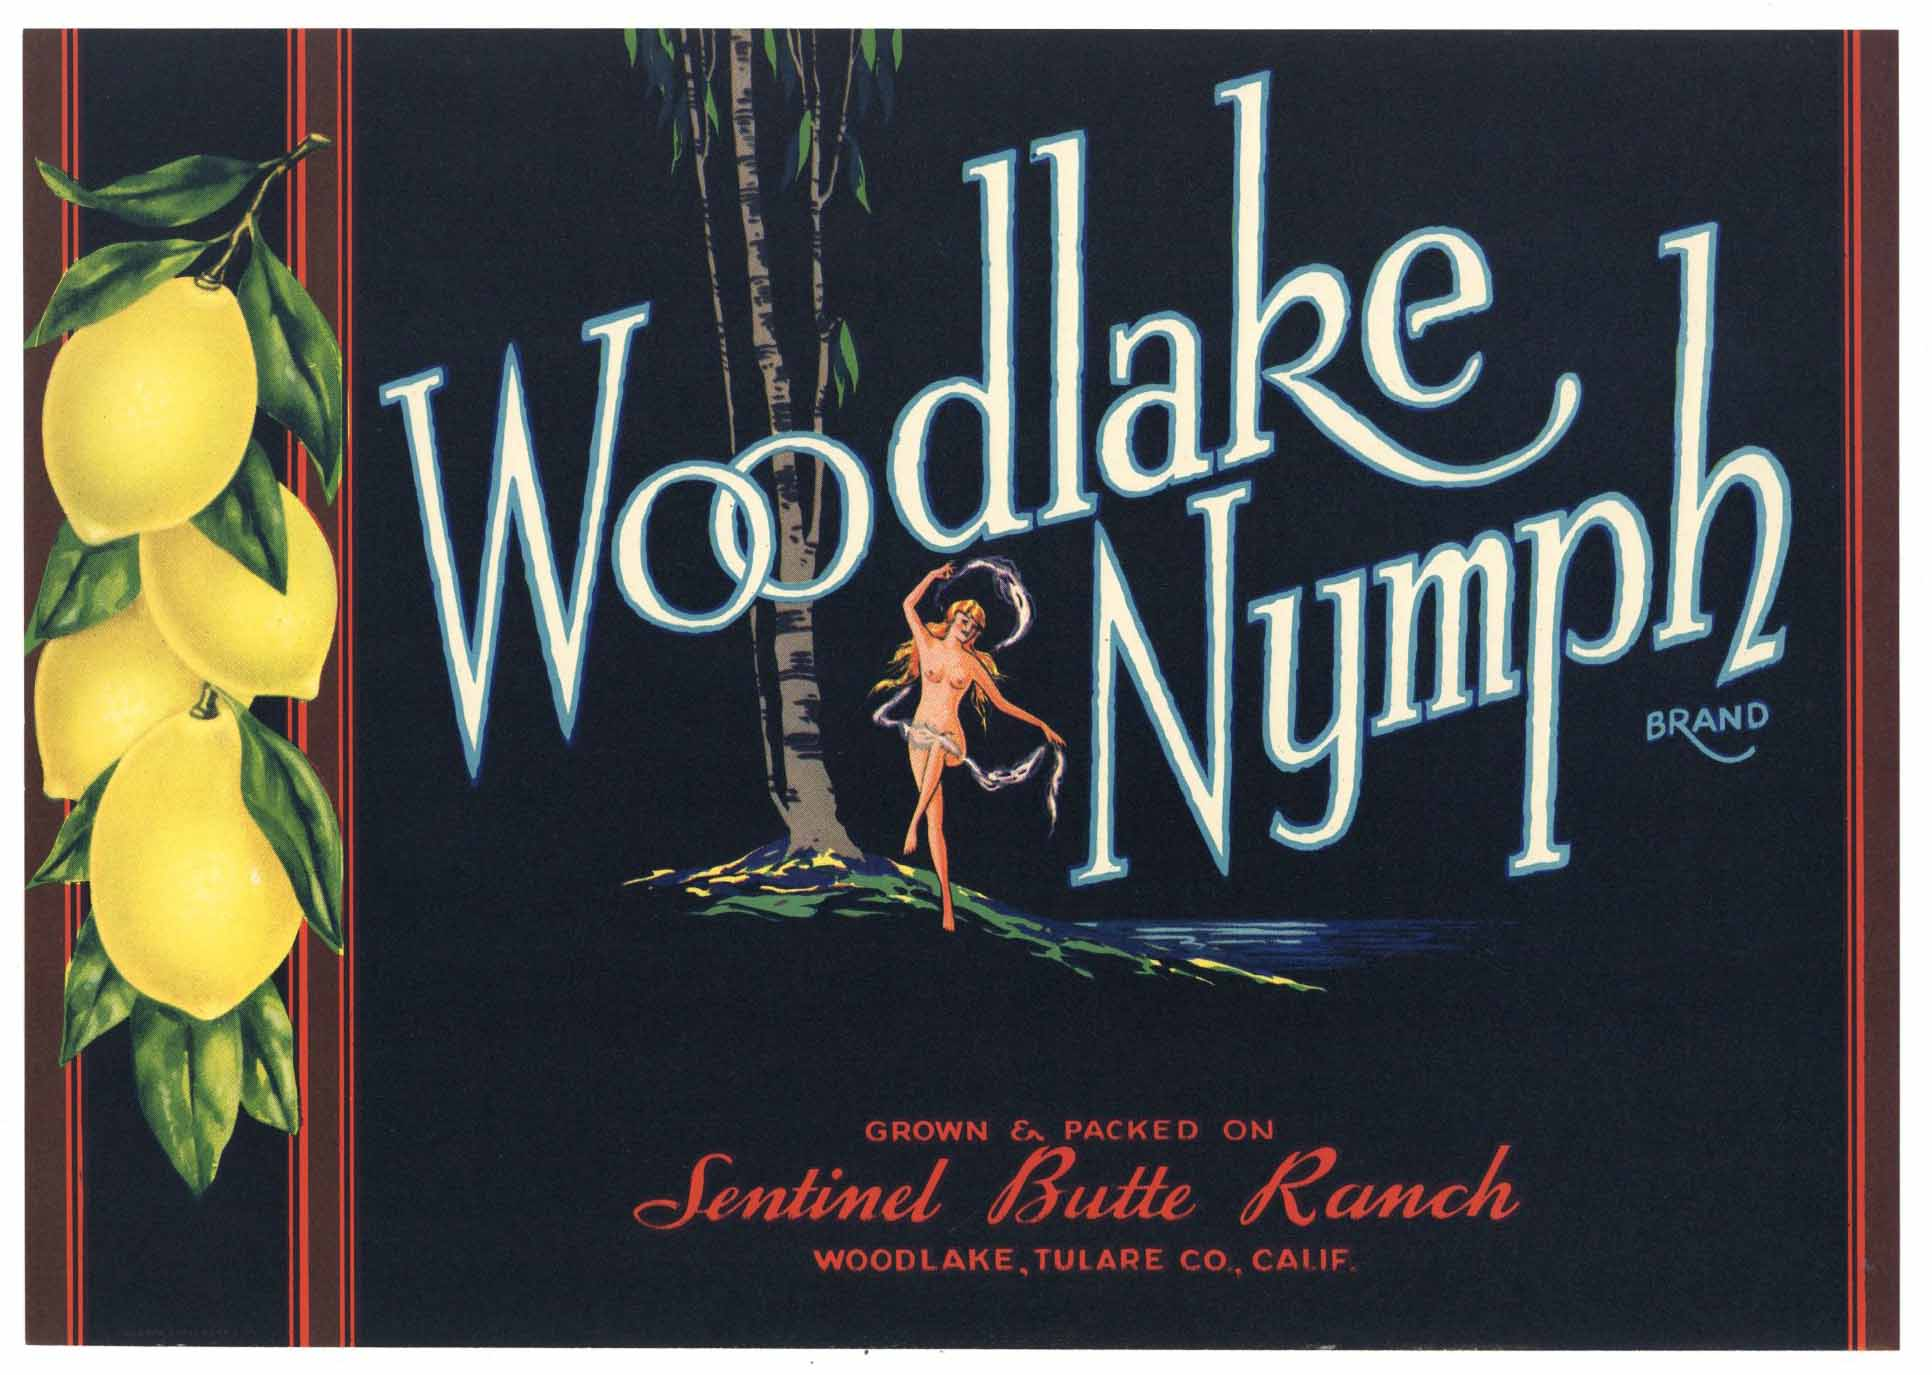 Woodlake Nymph Brand Vintage Lemon Crate Label